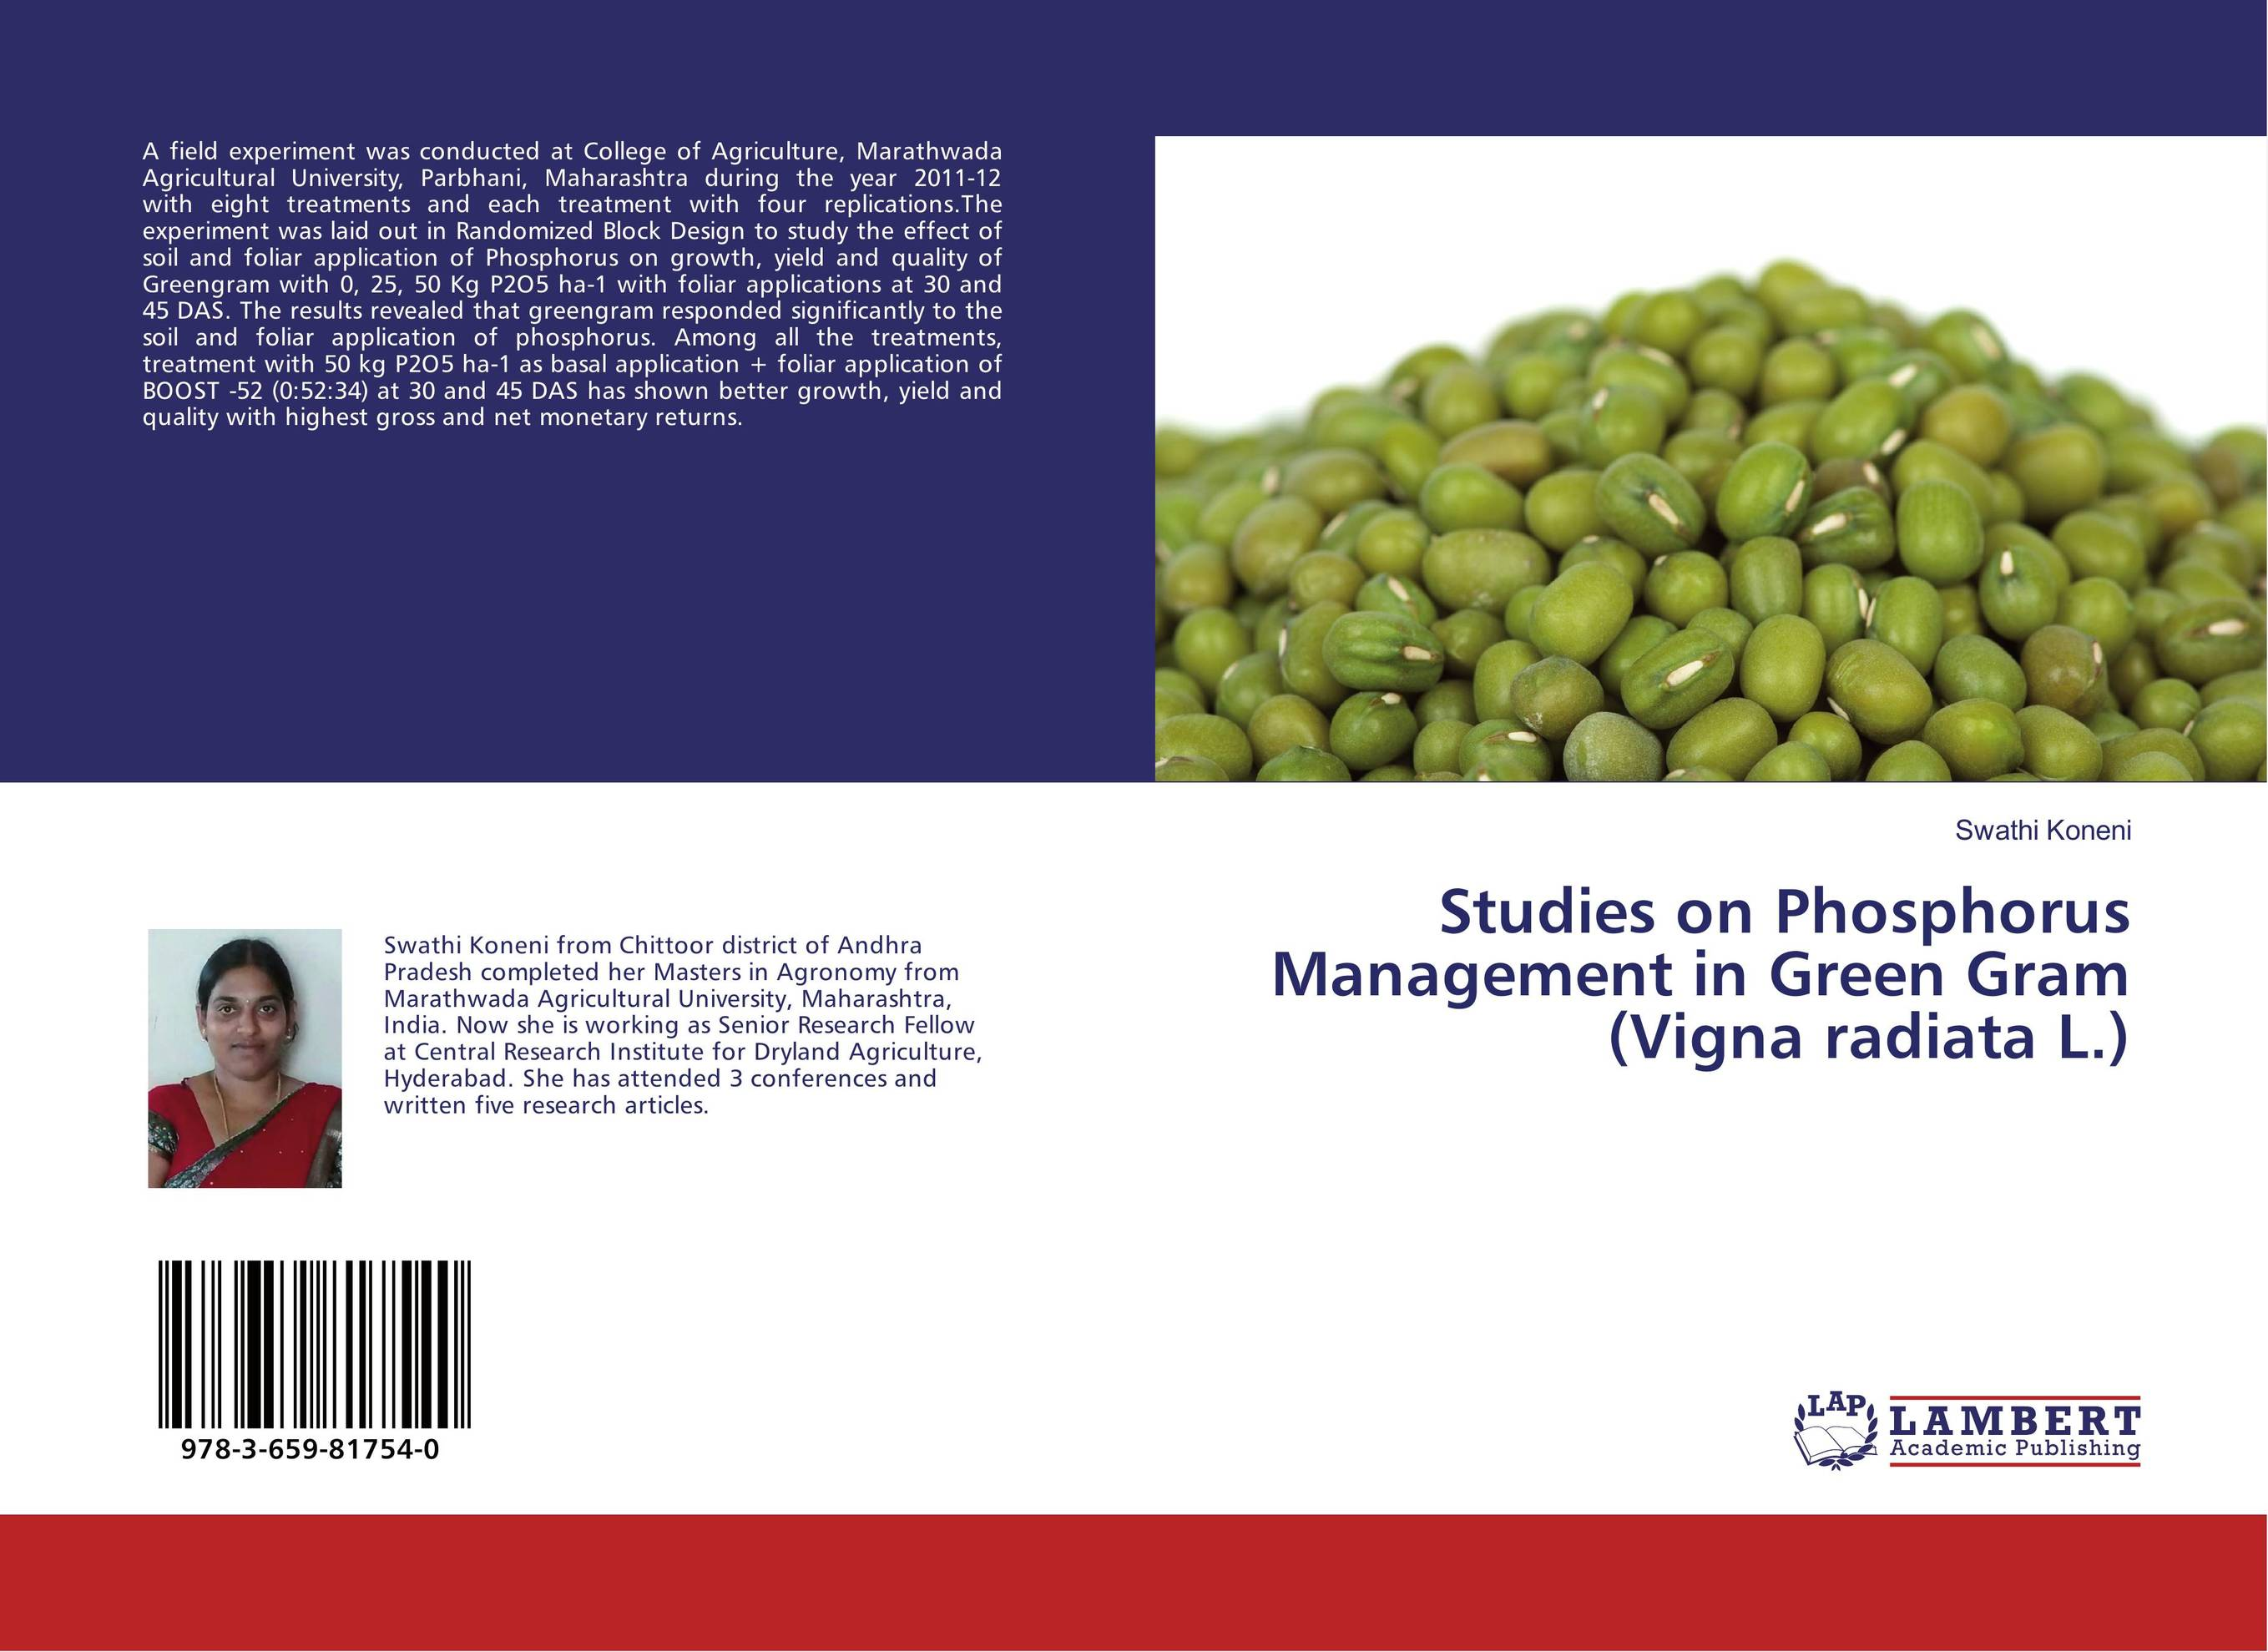 Studies on Phosphorus Management in Green Gram (Vigna radiata L.) james sagner working capital management applications and case studies